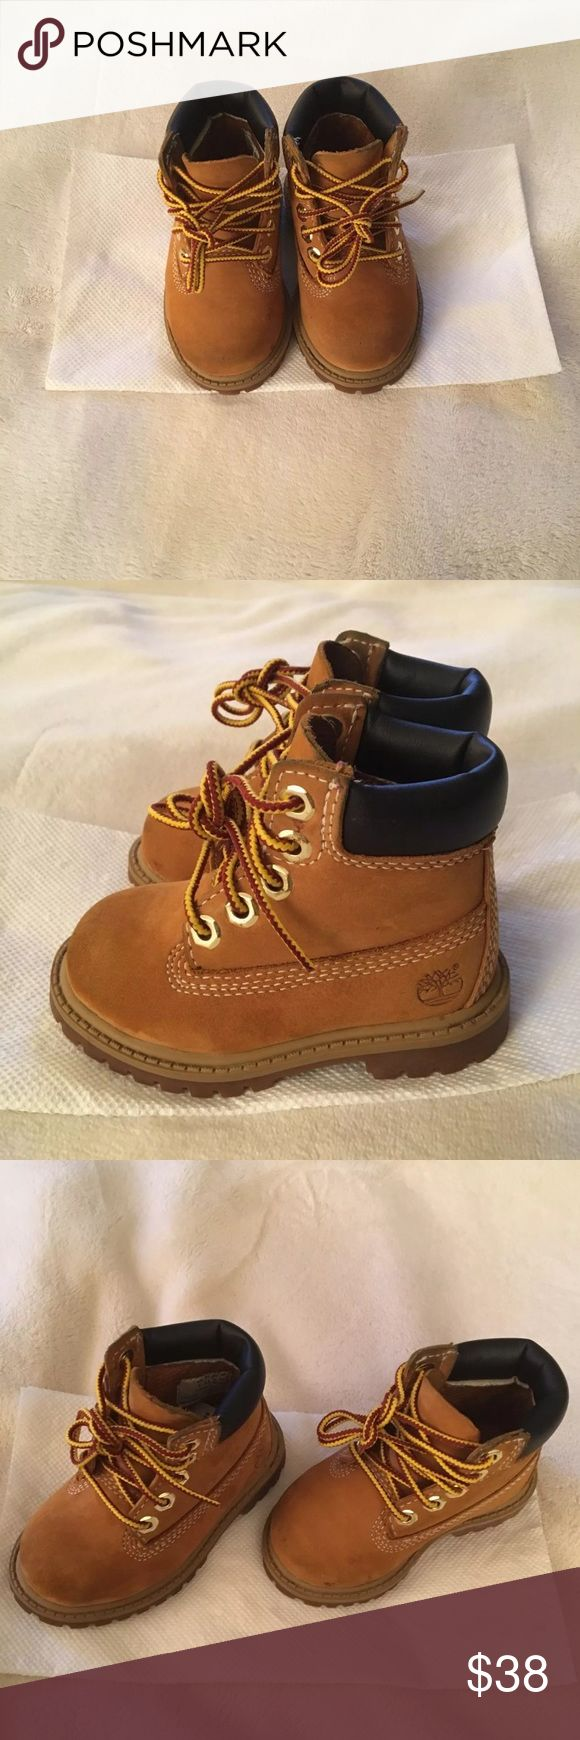 Toddler timberlands size 4 Toddler Timberlands unisex size 4. Please note these boots were only worn a few times, however, they do have some minor scuff marks. Timberland boots come without the box. Timberland Shoes Boots